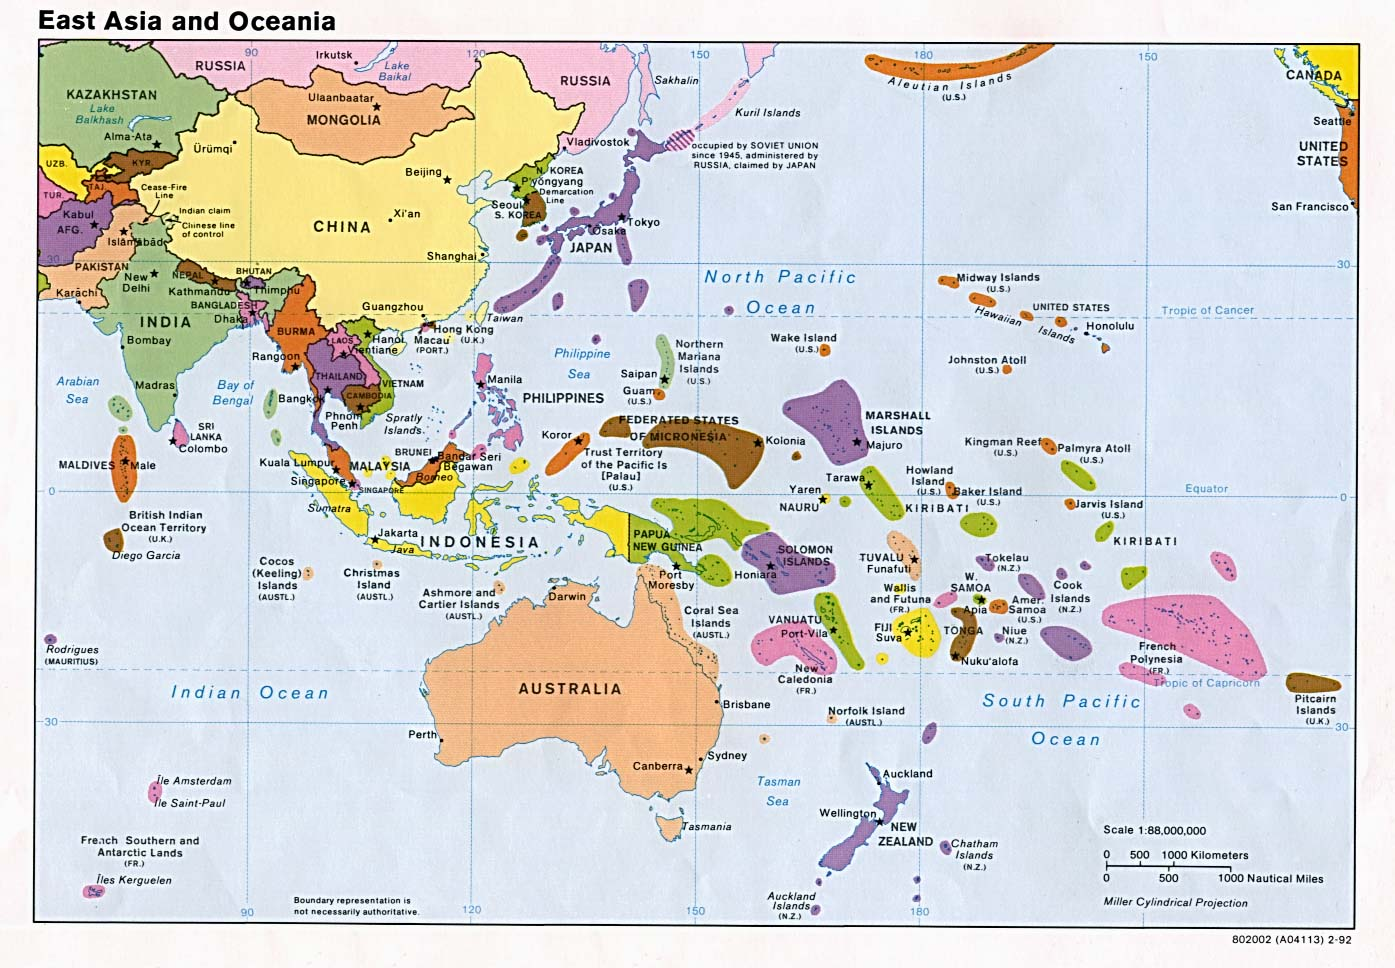 East Asia and Oceania Political 1992